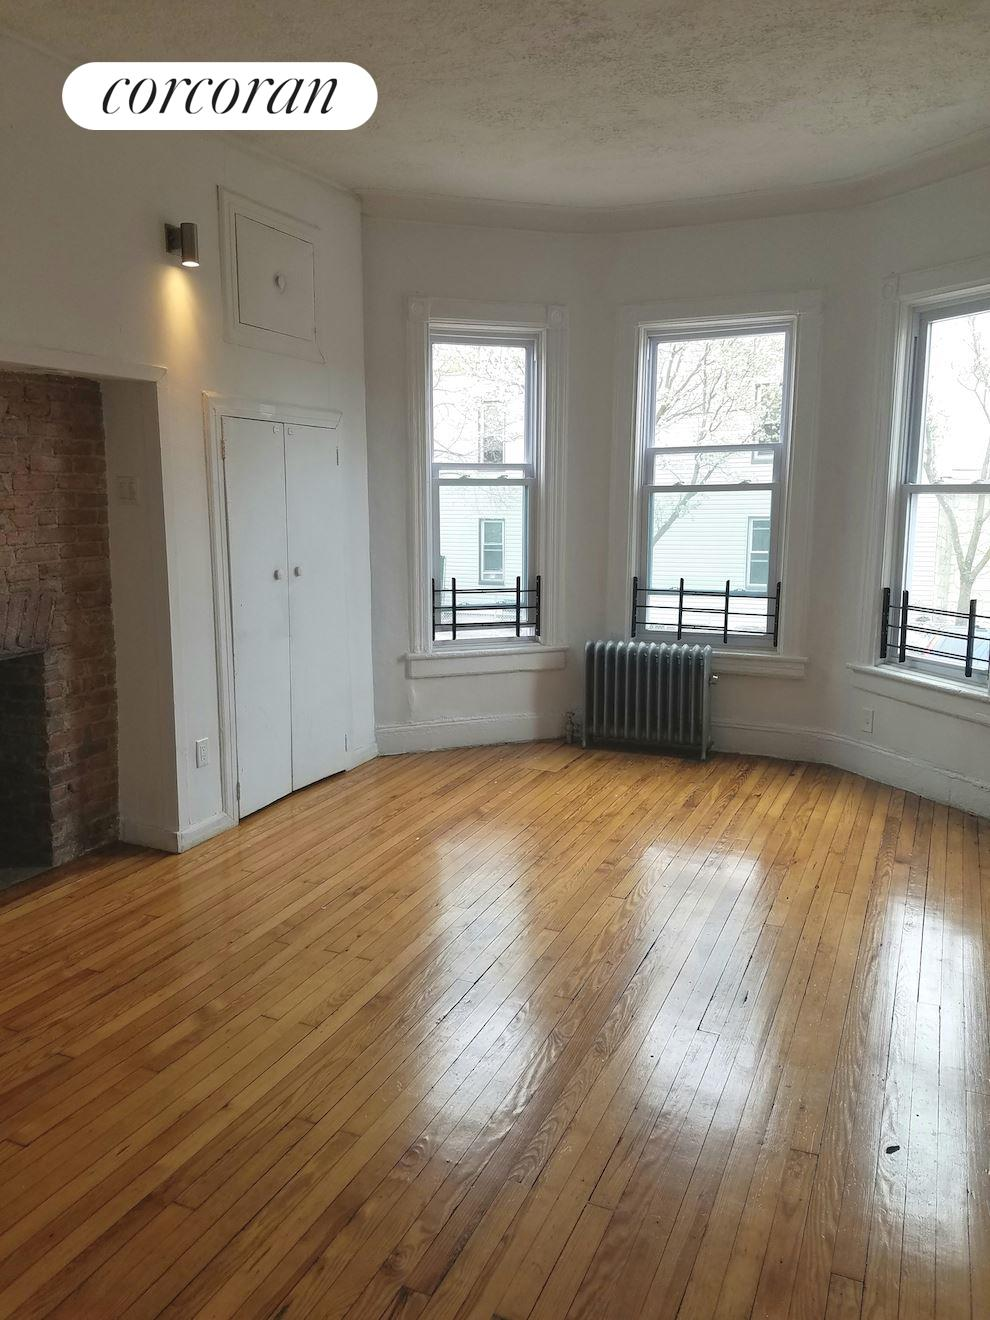 Corcoran 78 East 2nd Street Apt 1 Windsor Terrace Rentals Brooklyn Rentals Windsor Terrace